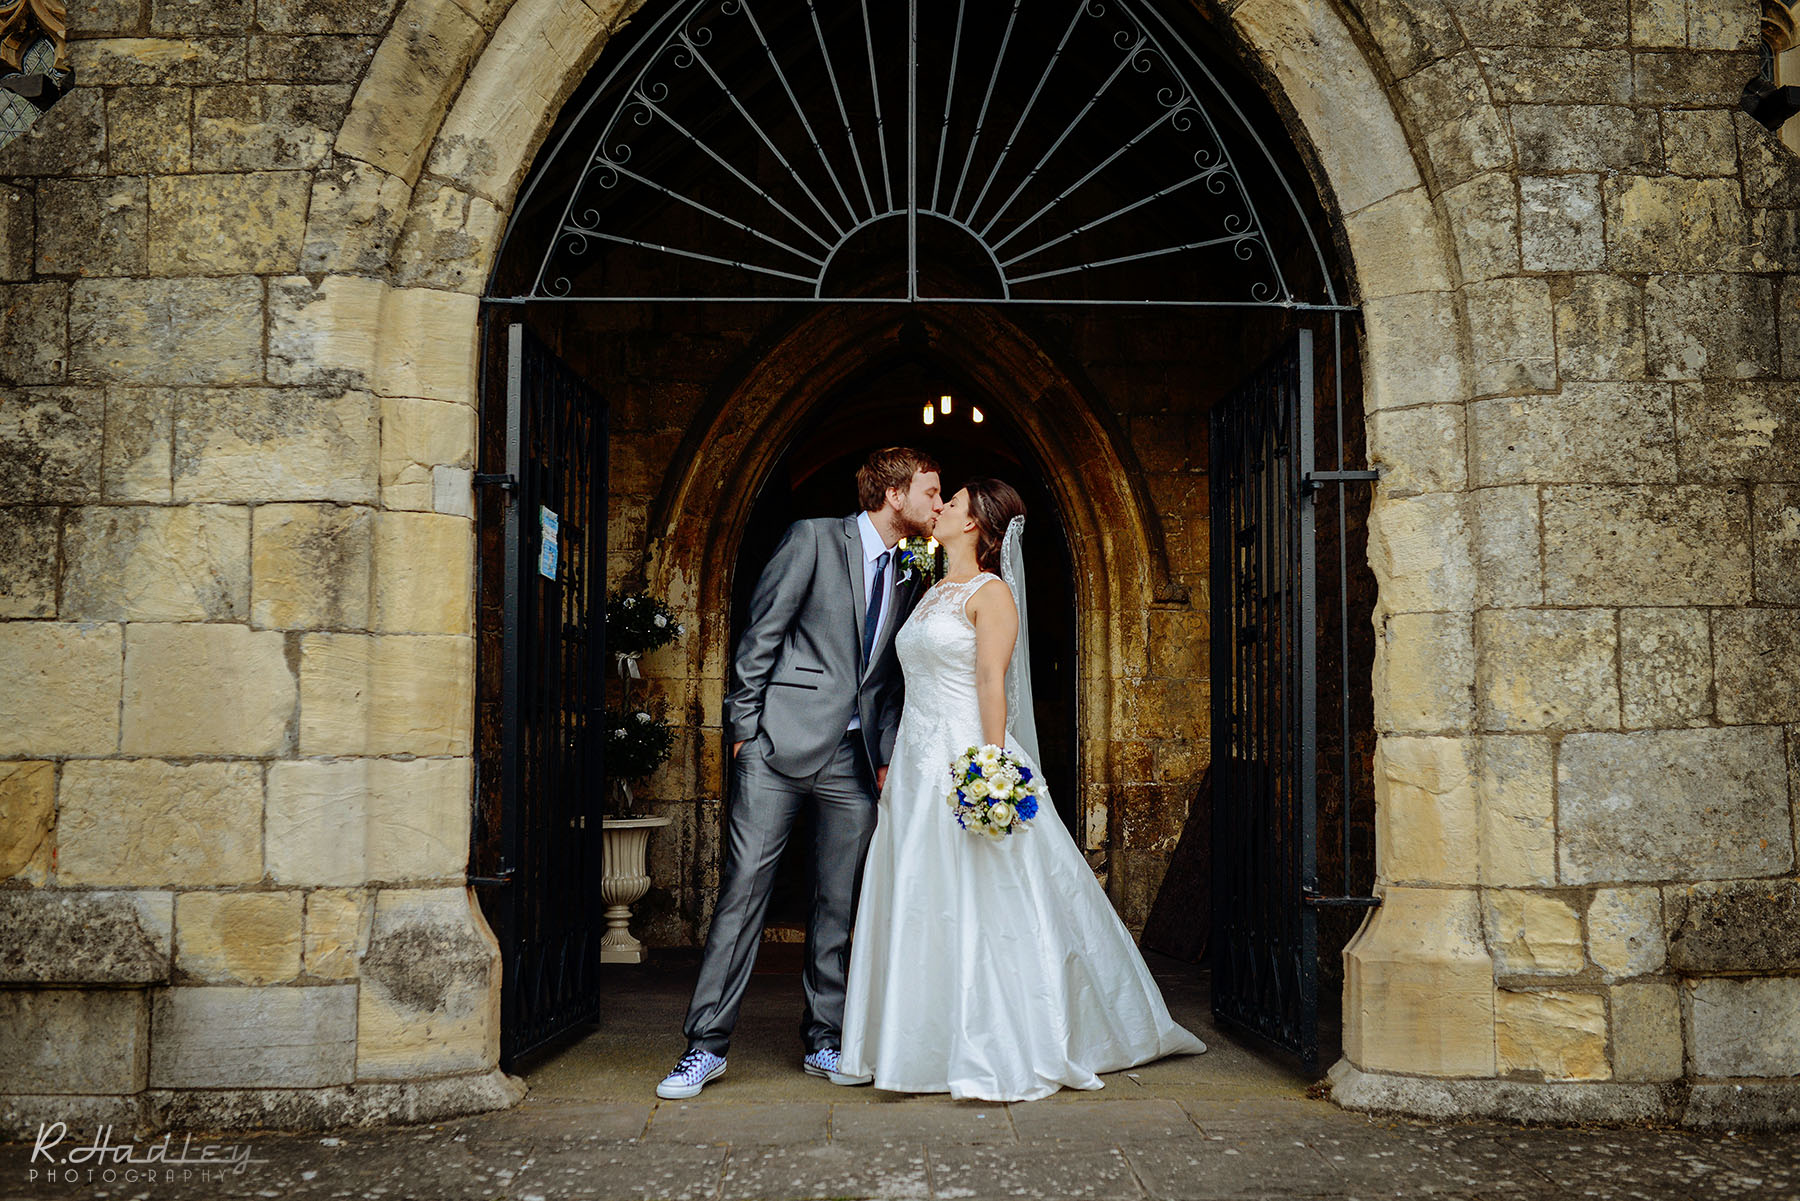 Wedding photographer in Warwickshire and Yorkshire.